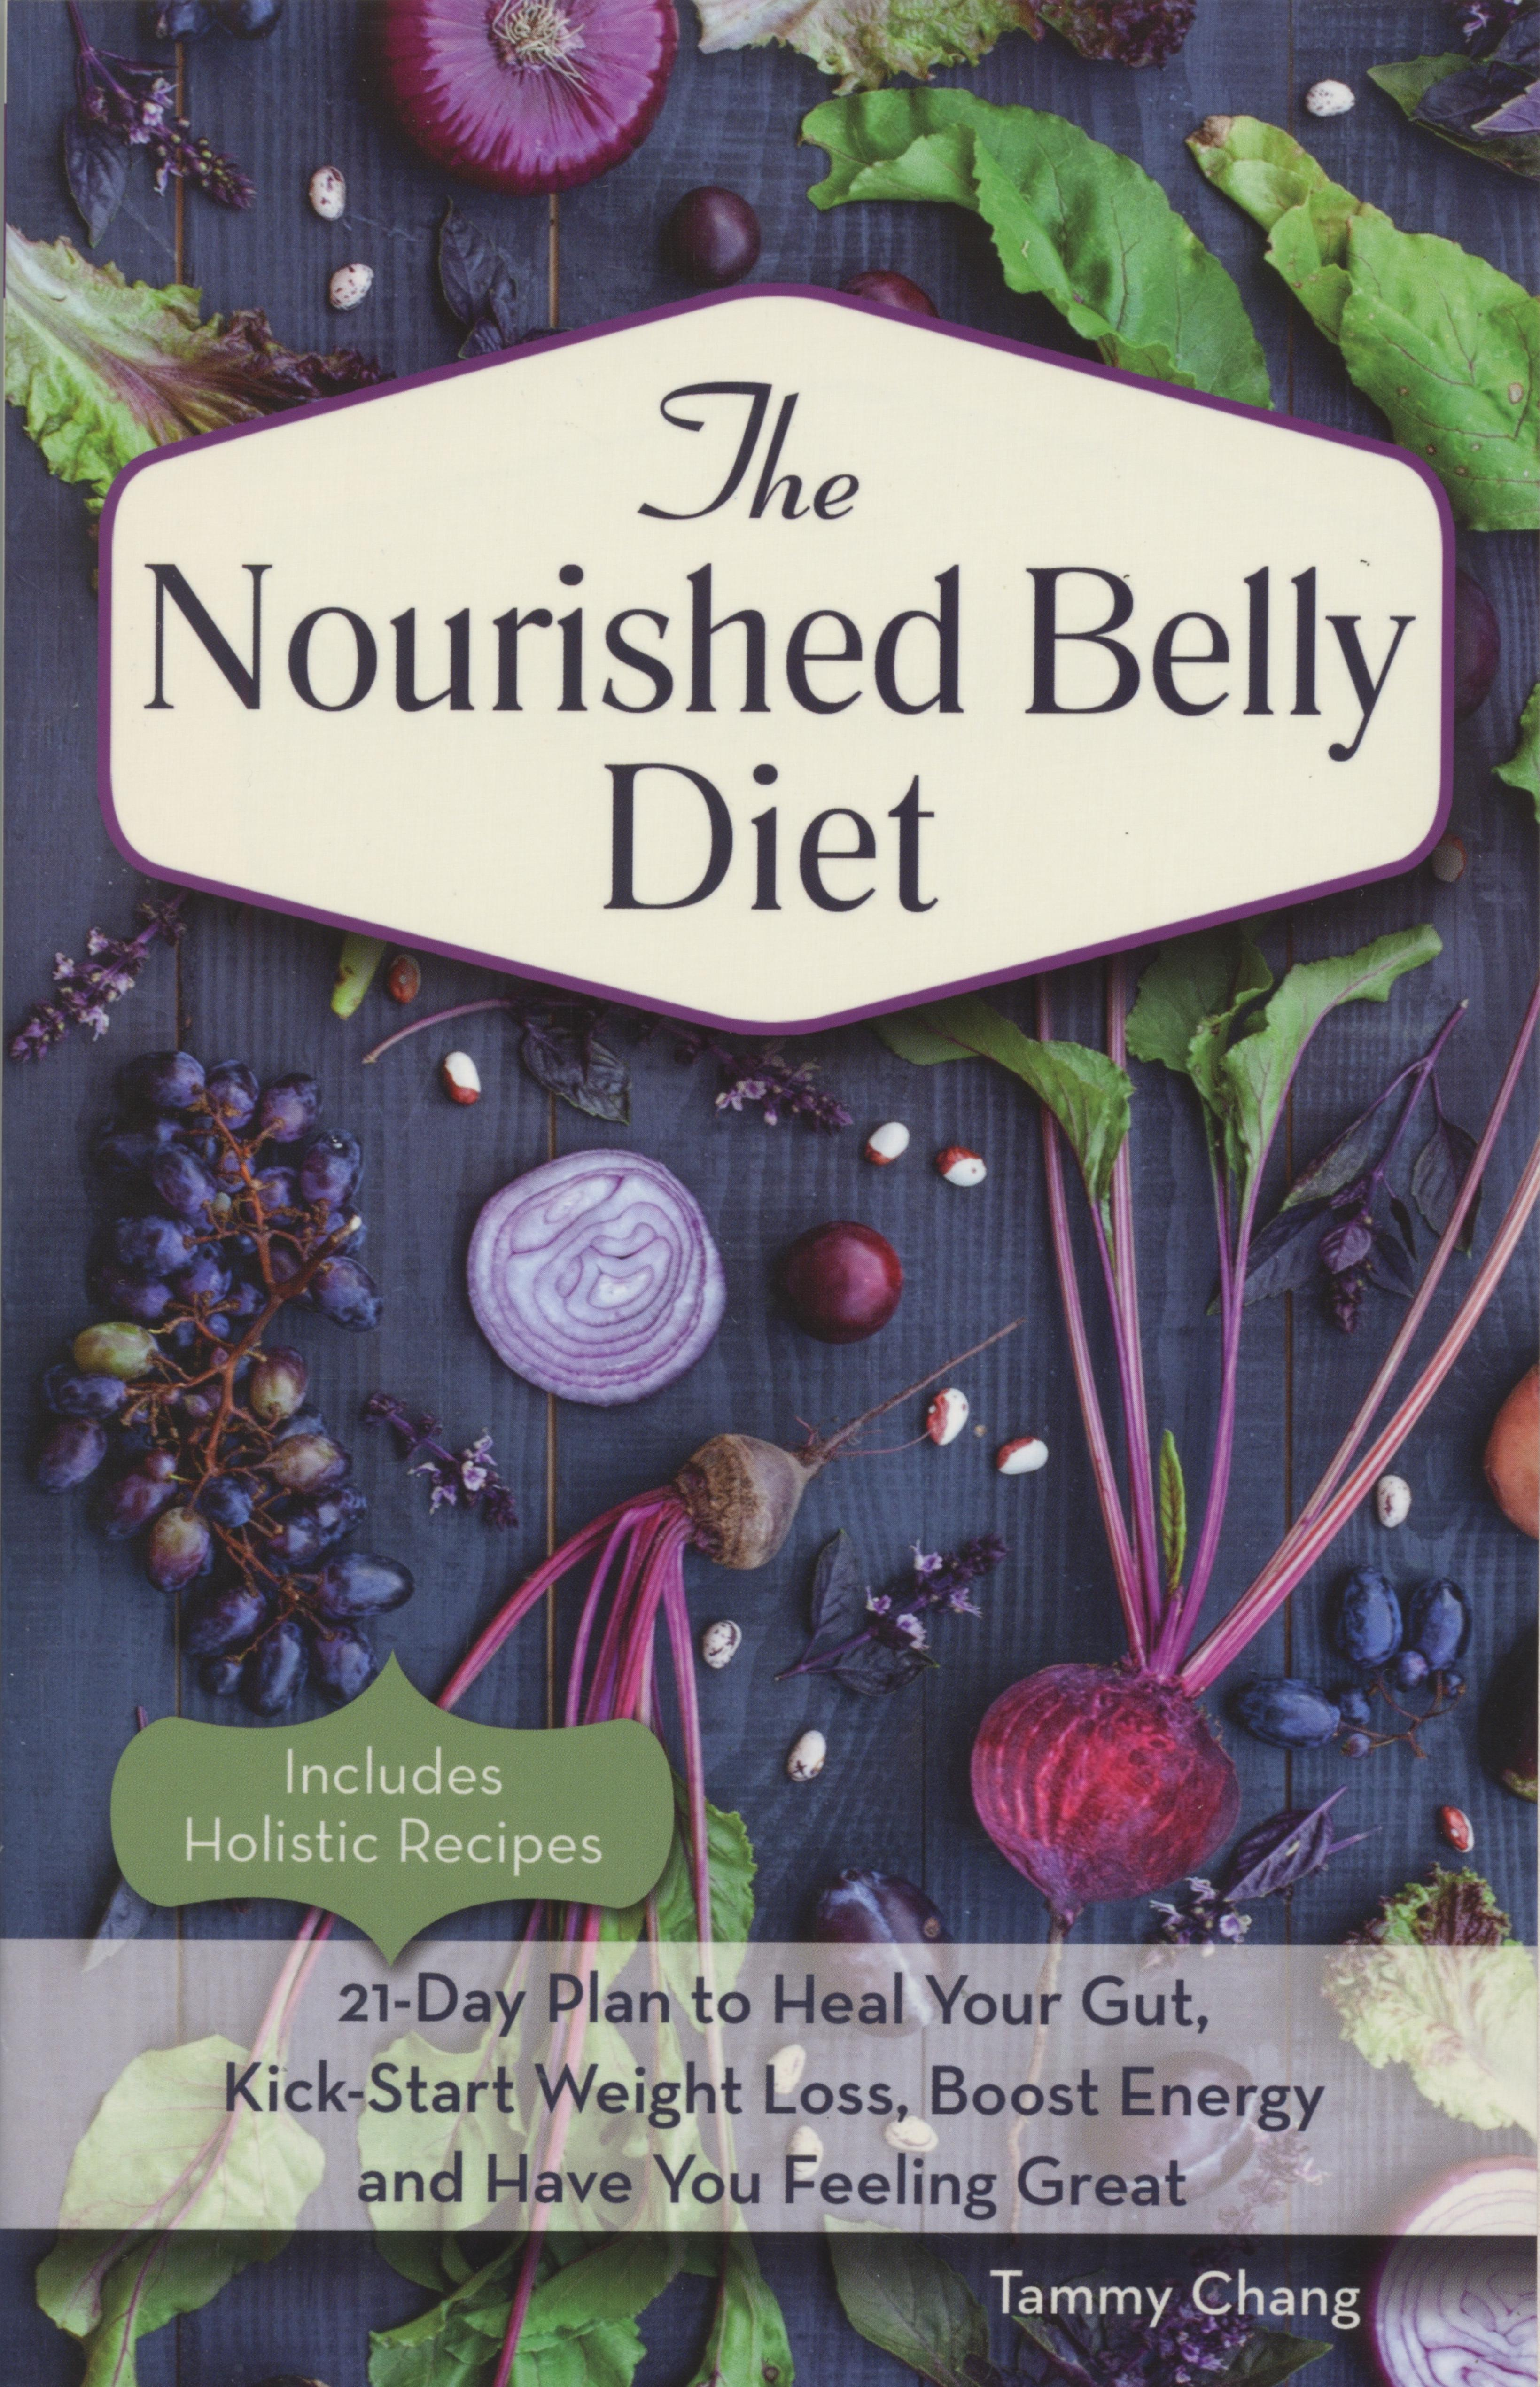 1314. The Nourished Belly Diet/Tammy Chang/2016